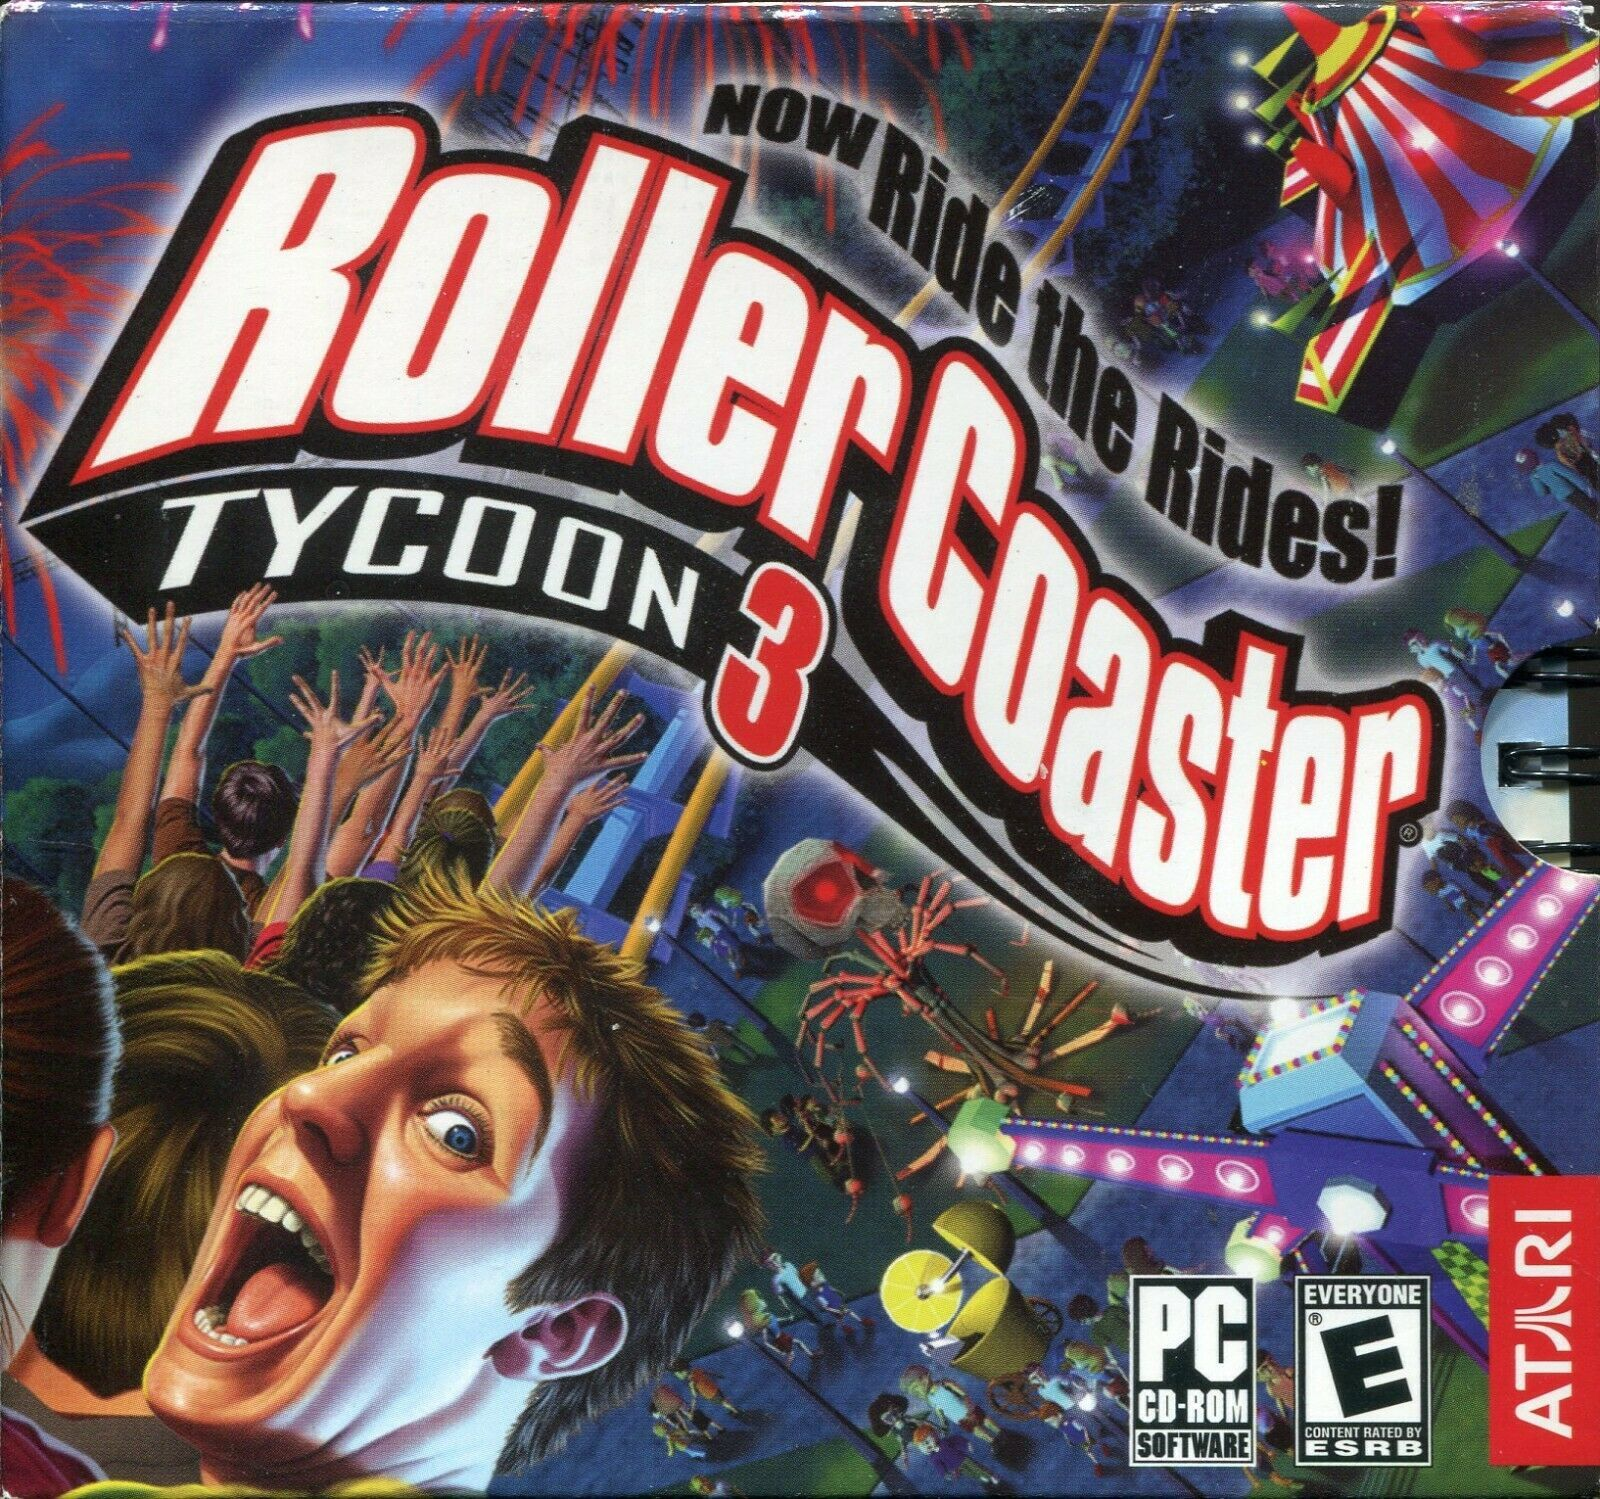 Primary image for RollerCoaster Tycoon 3 (PC, 2004) - COMPLETE BOOKLET / DISC CASE / KEY CODE